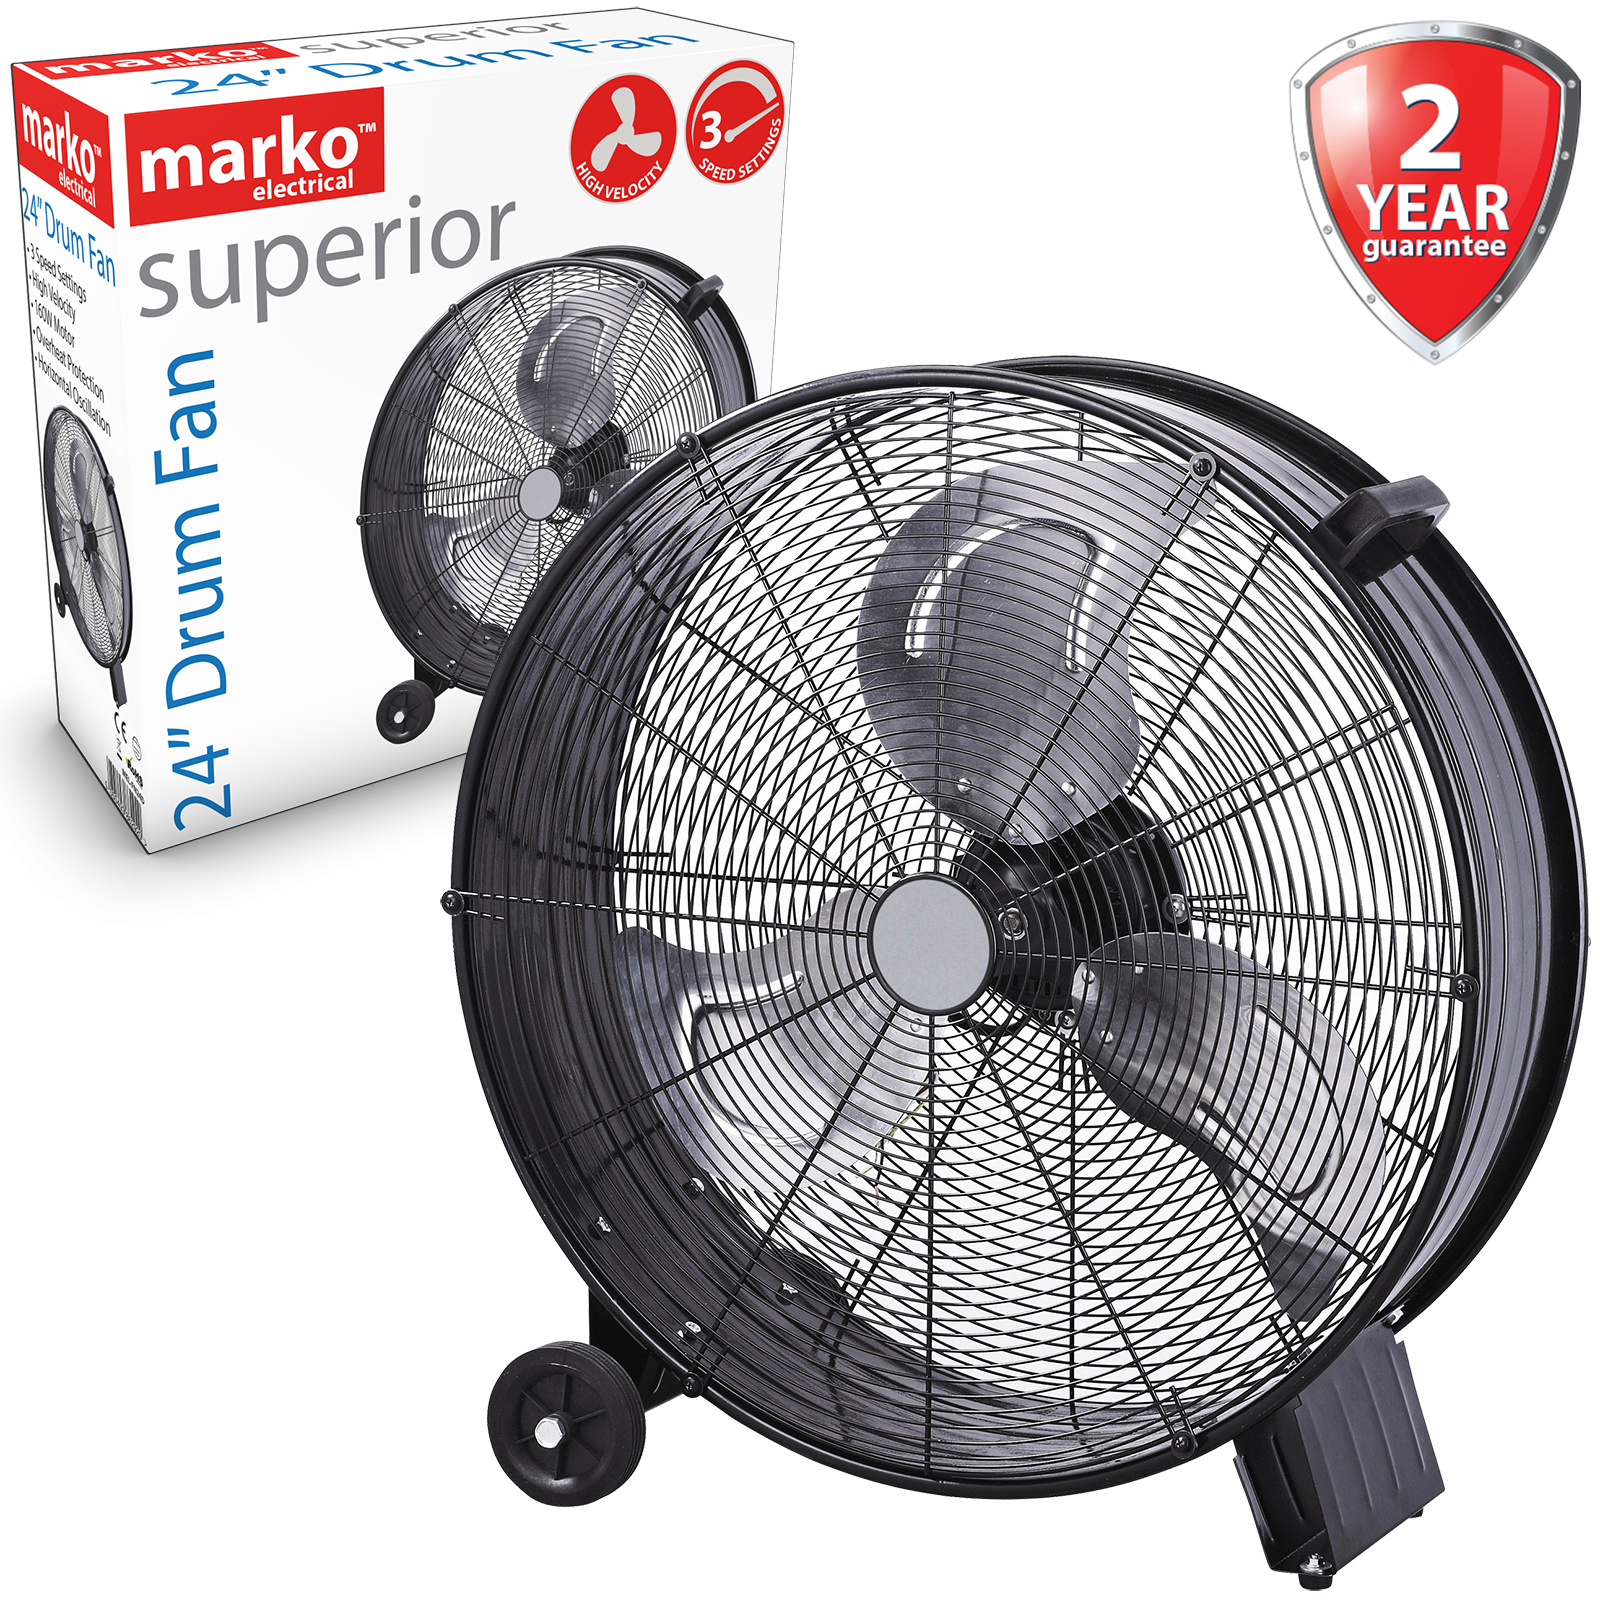 9Inch Pedestal Oscillating Stand Fan Desk Electric Tower Standing Home Powerful